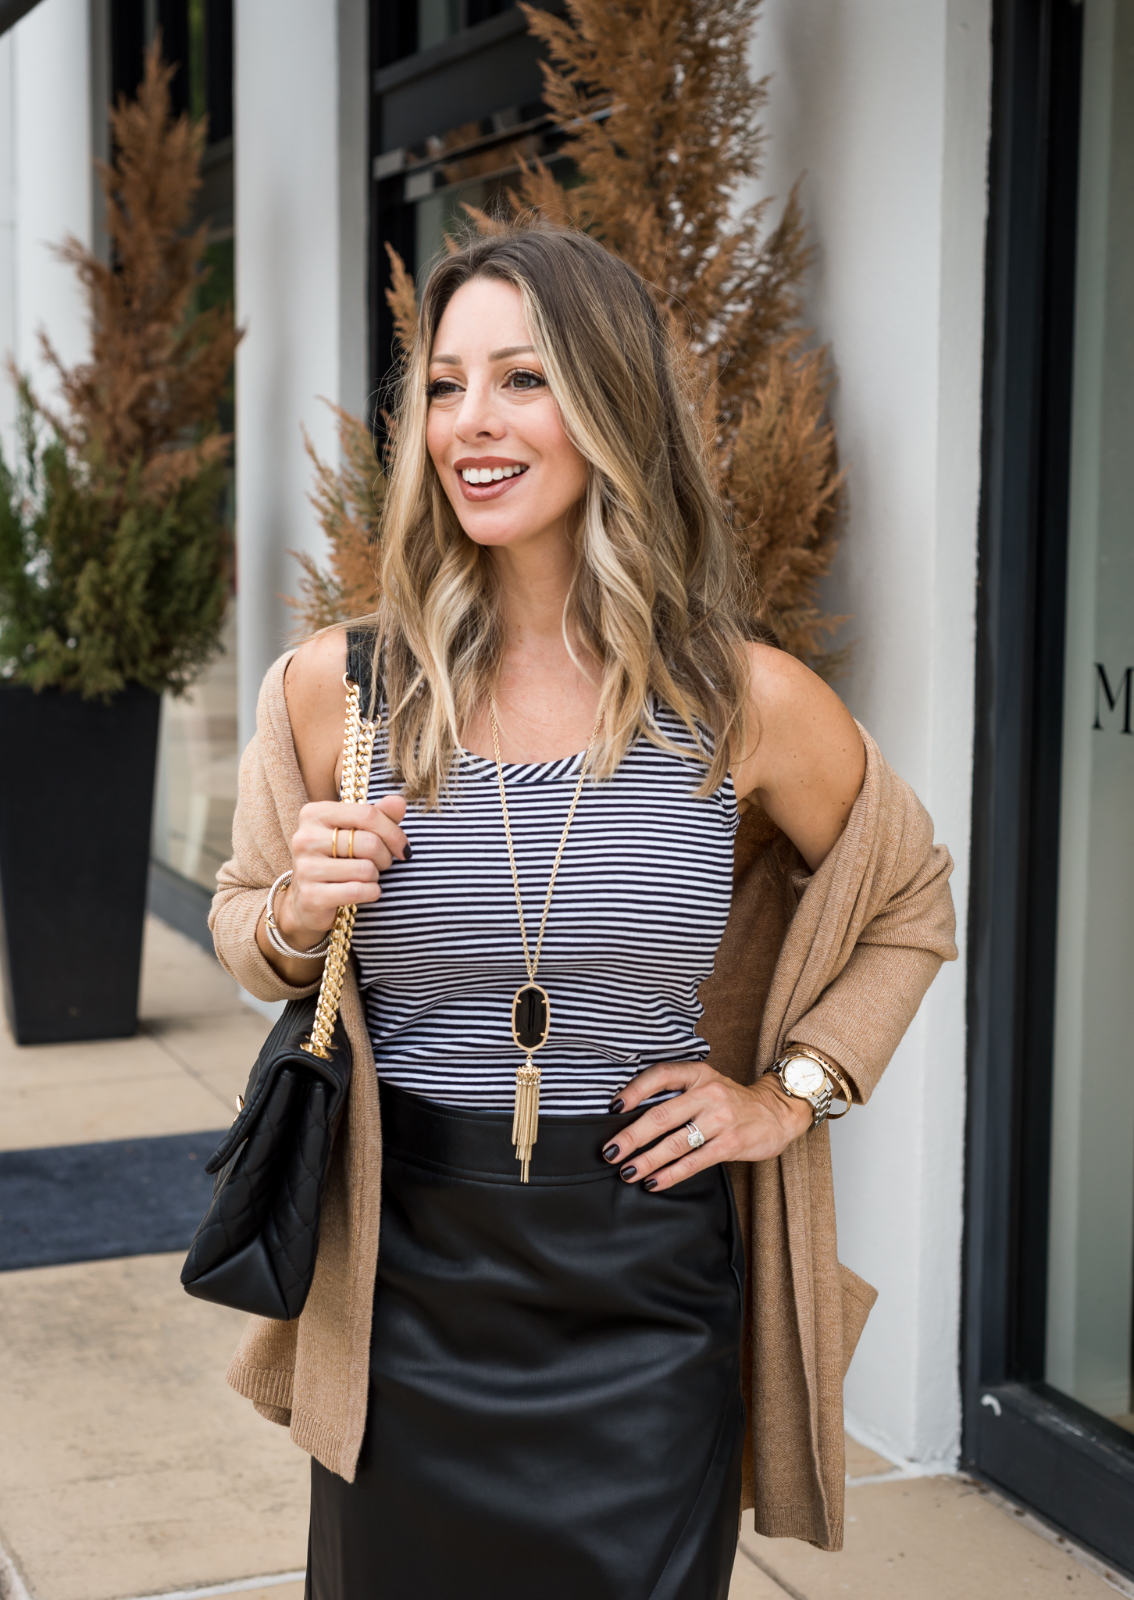 Loft striped tank and cardigan for fall